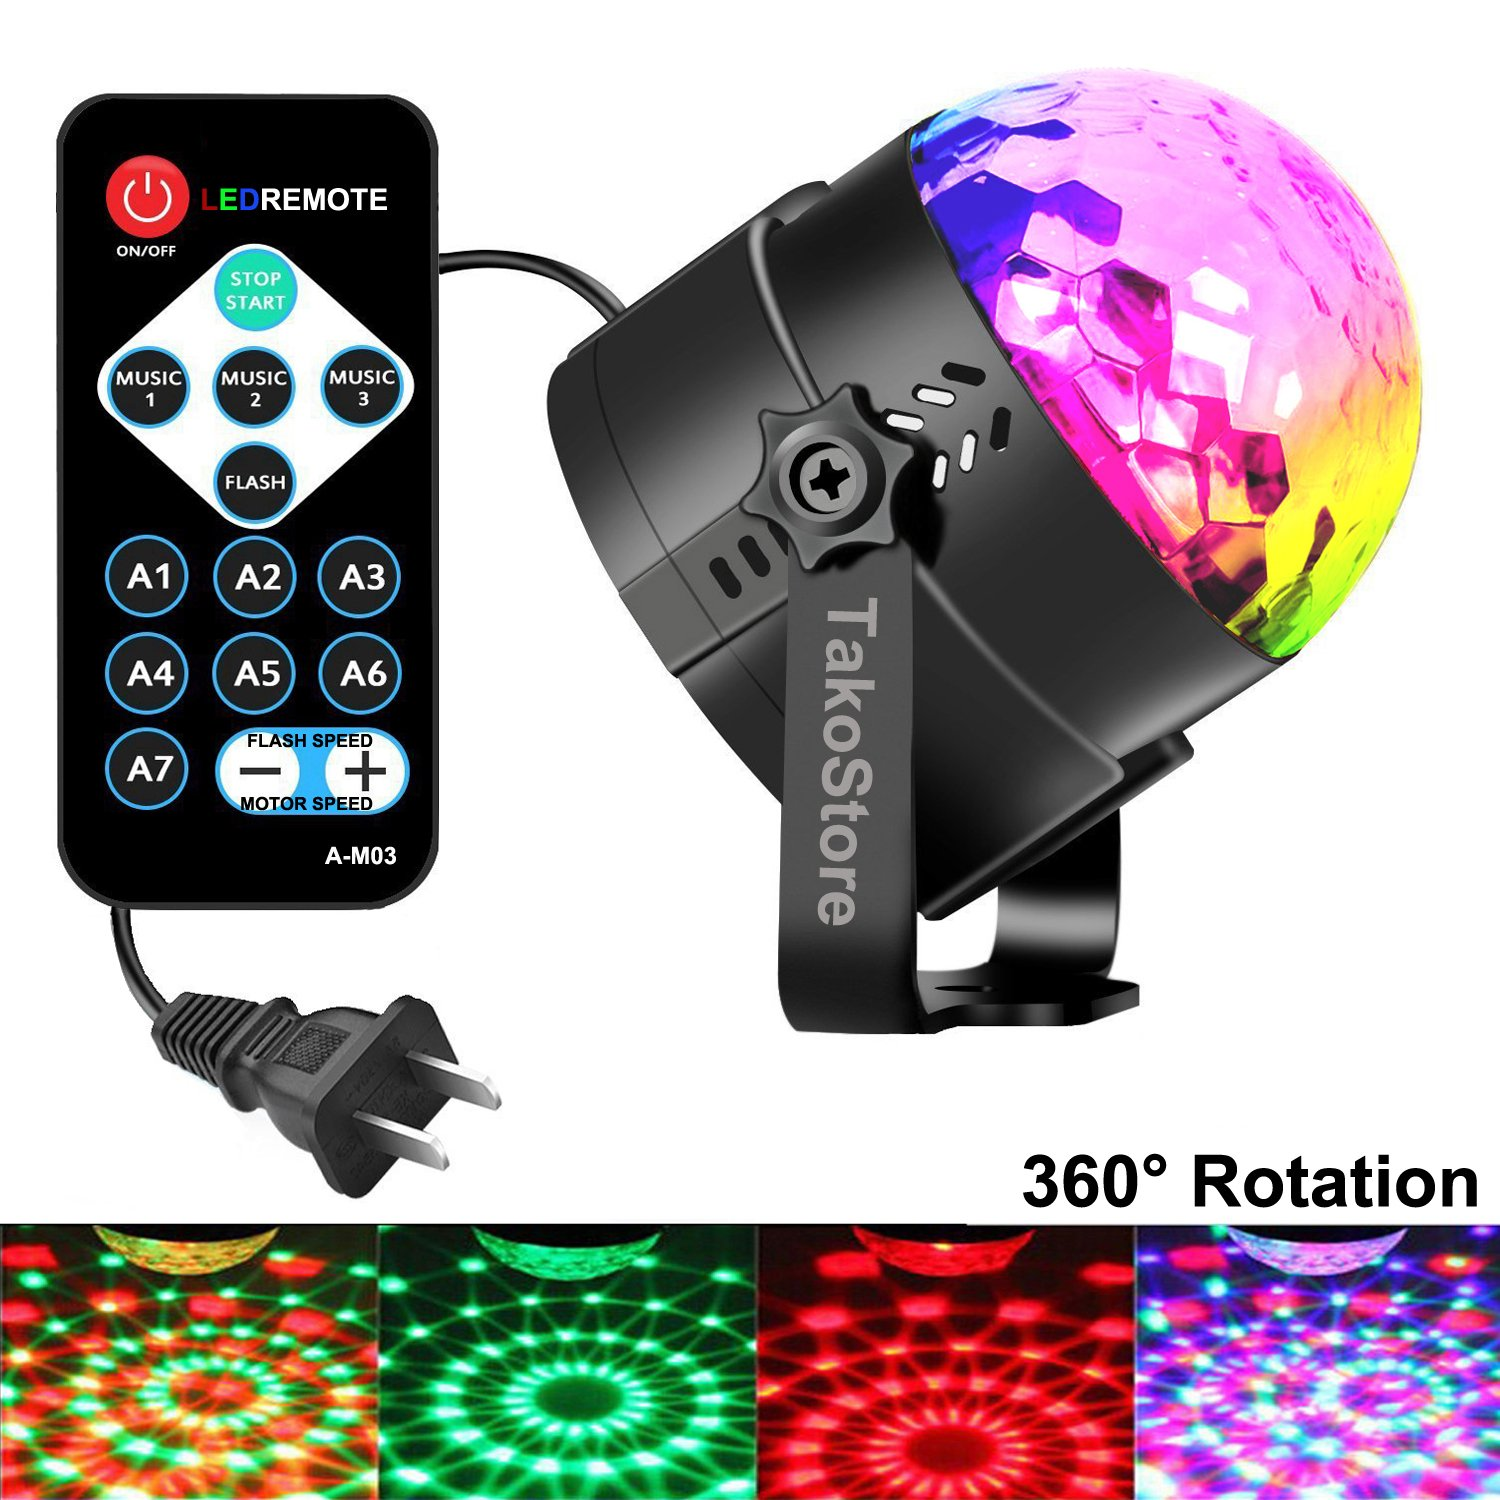 Mini disco ball lights,LED Party Lights,Strobe Light,Sound Actived Auto RGB Mini Rotating Magic Disco Ball Strobe Stage Light For Kids Birthday DJ Dancing Show,Club,Christmas,Birthday Party(with Plug)